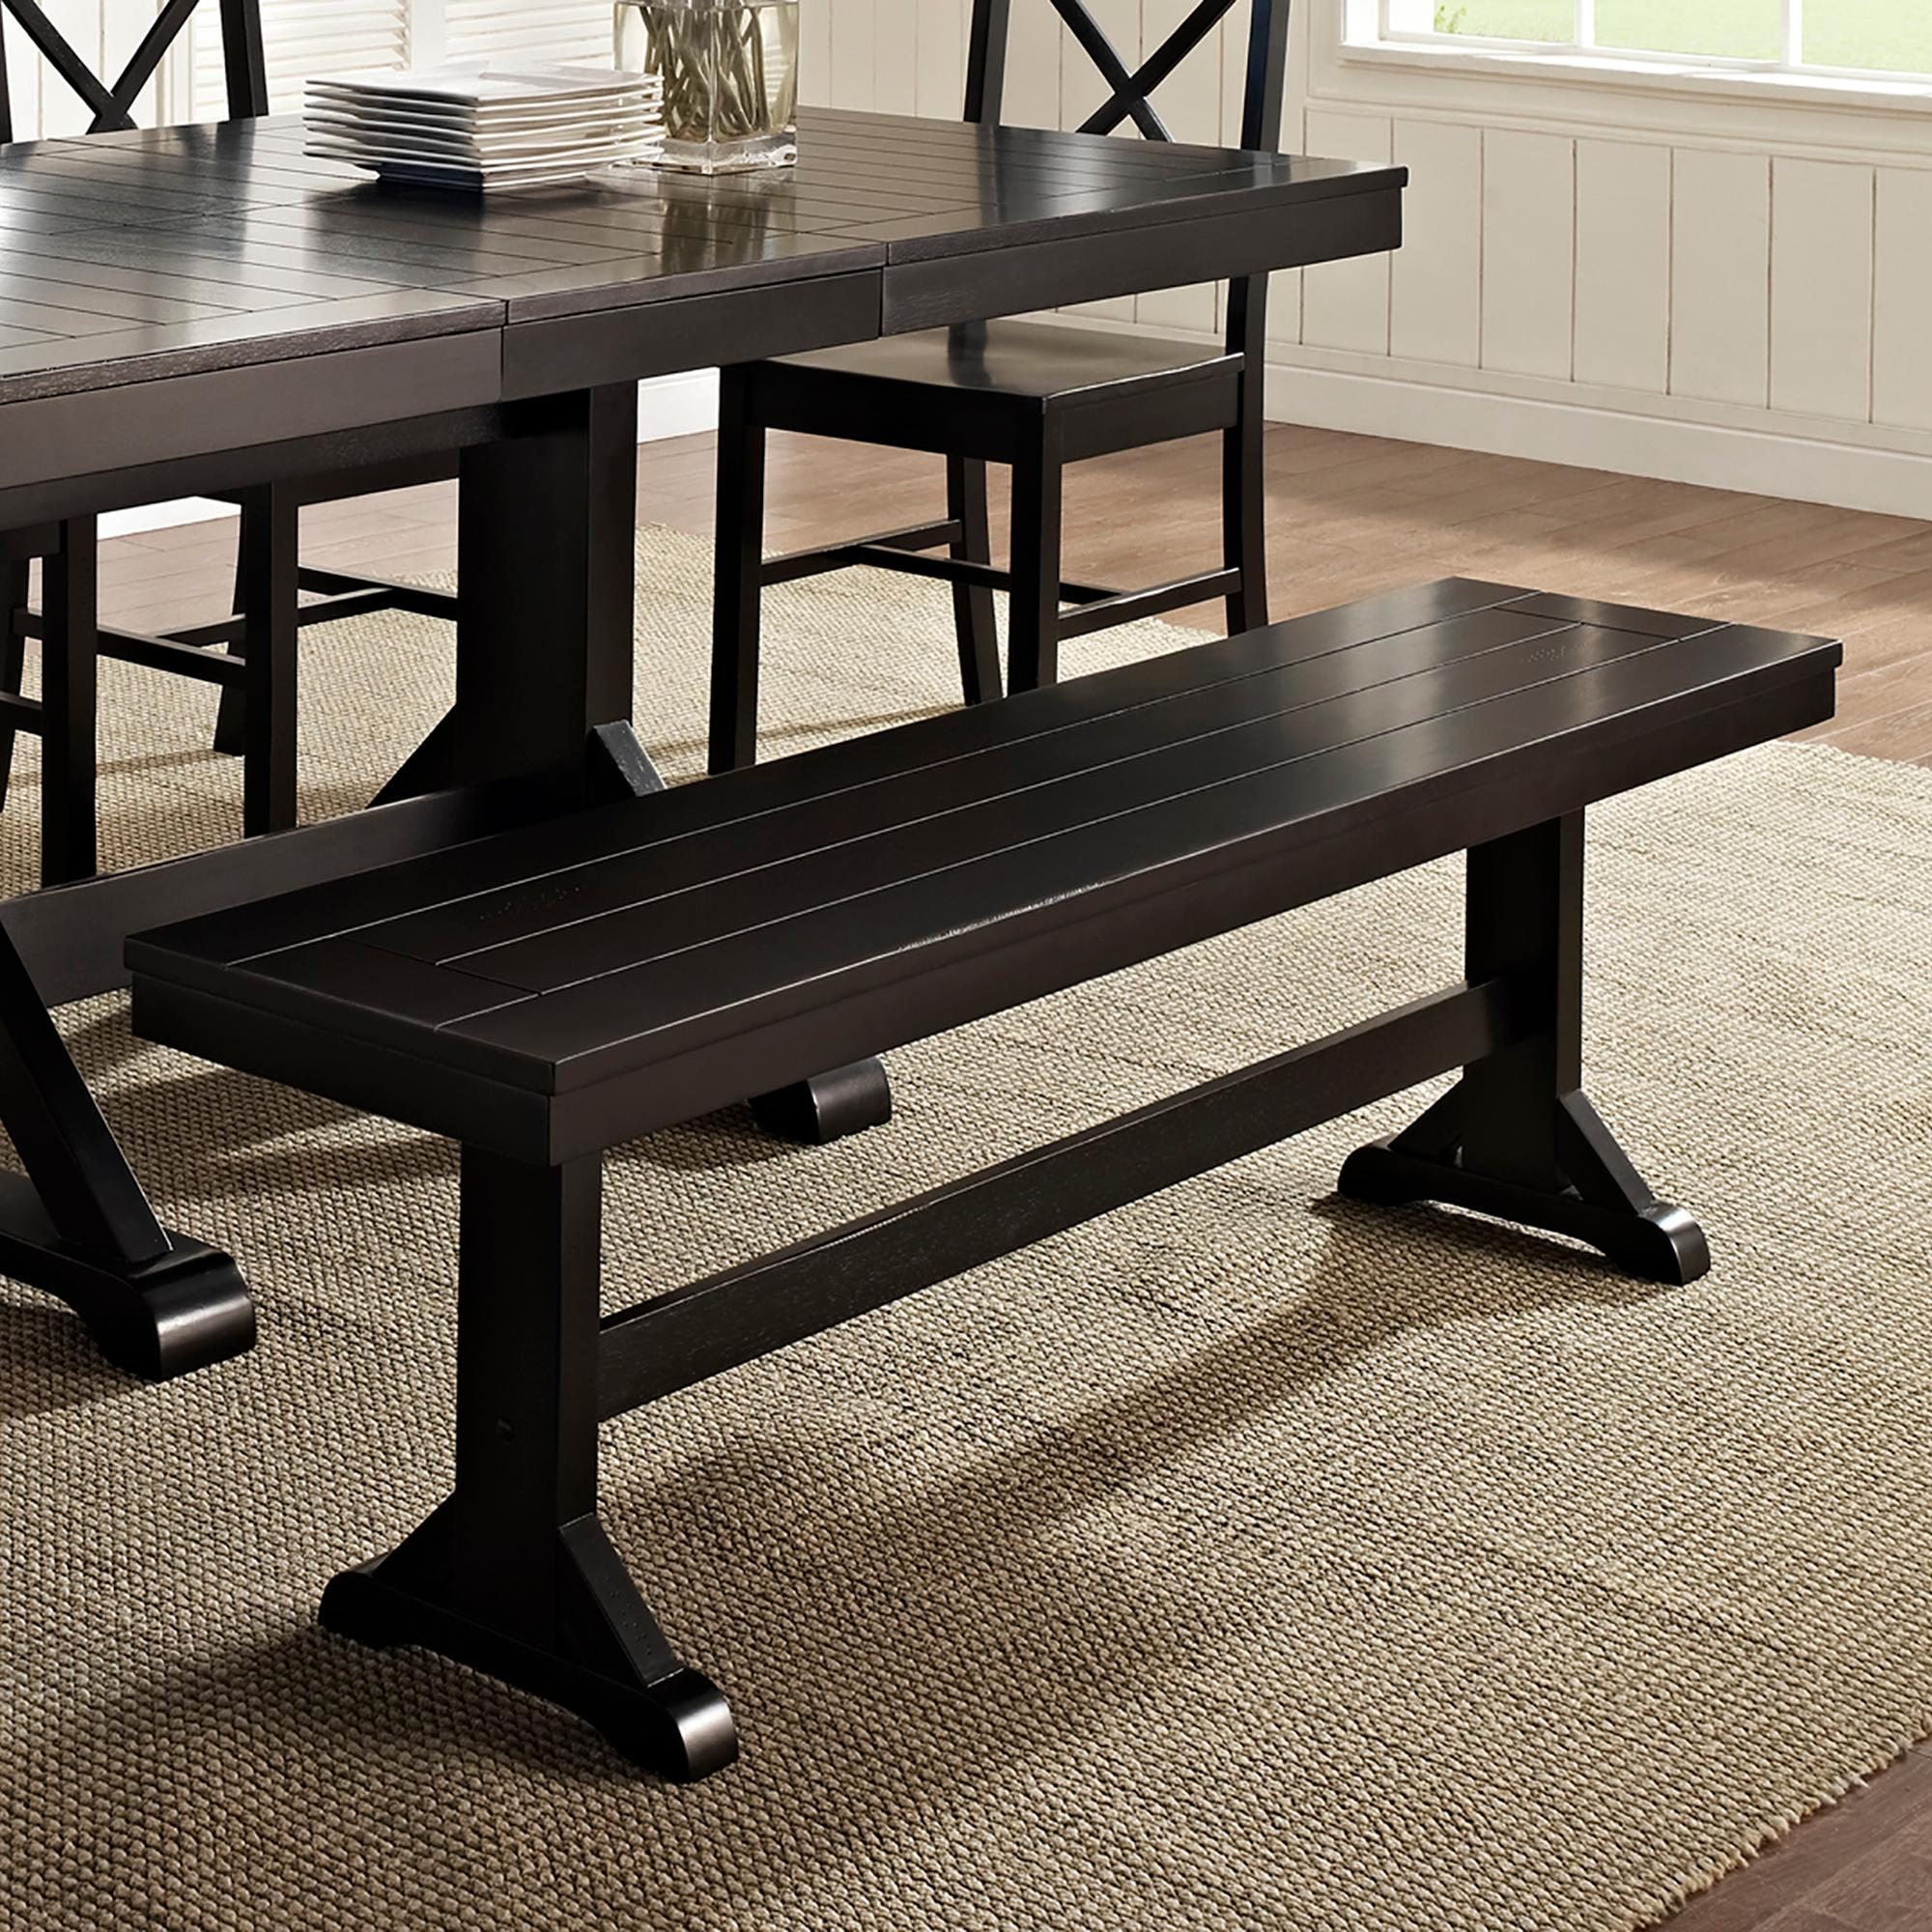 Dining Tables Benches: Walker Edison Furniture Company 3 Person